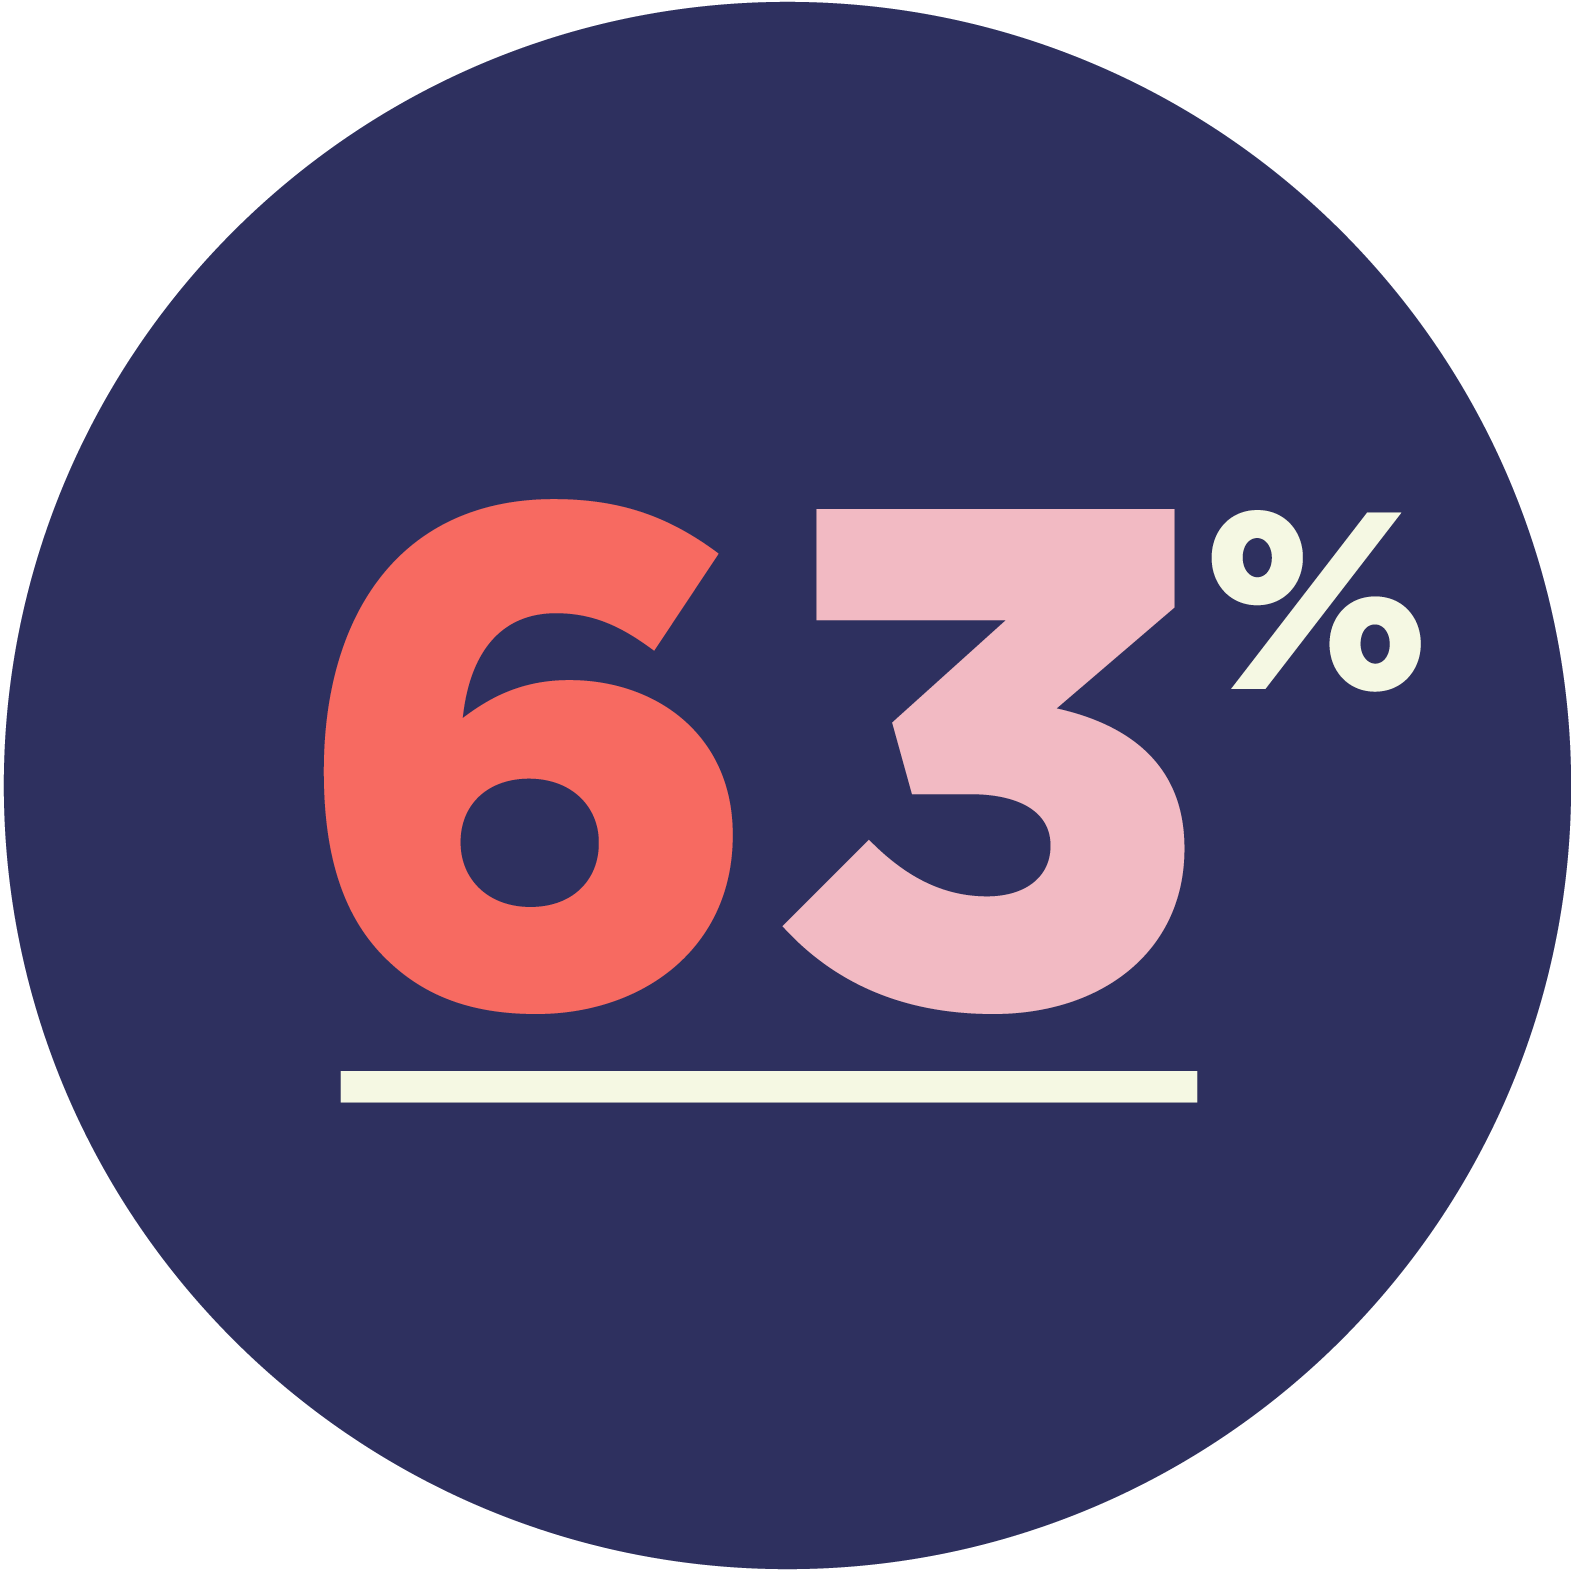 63% number.png